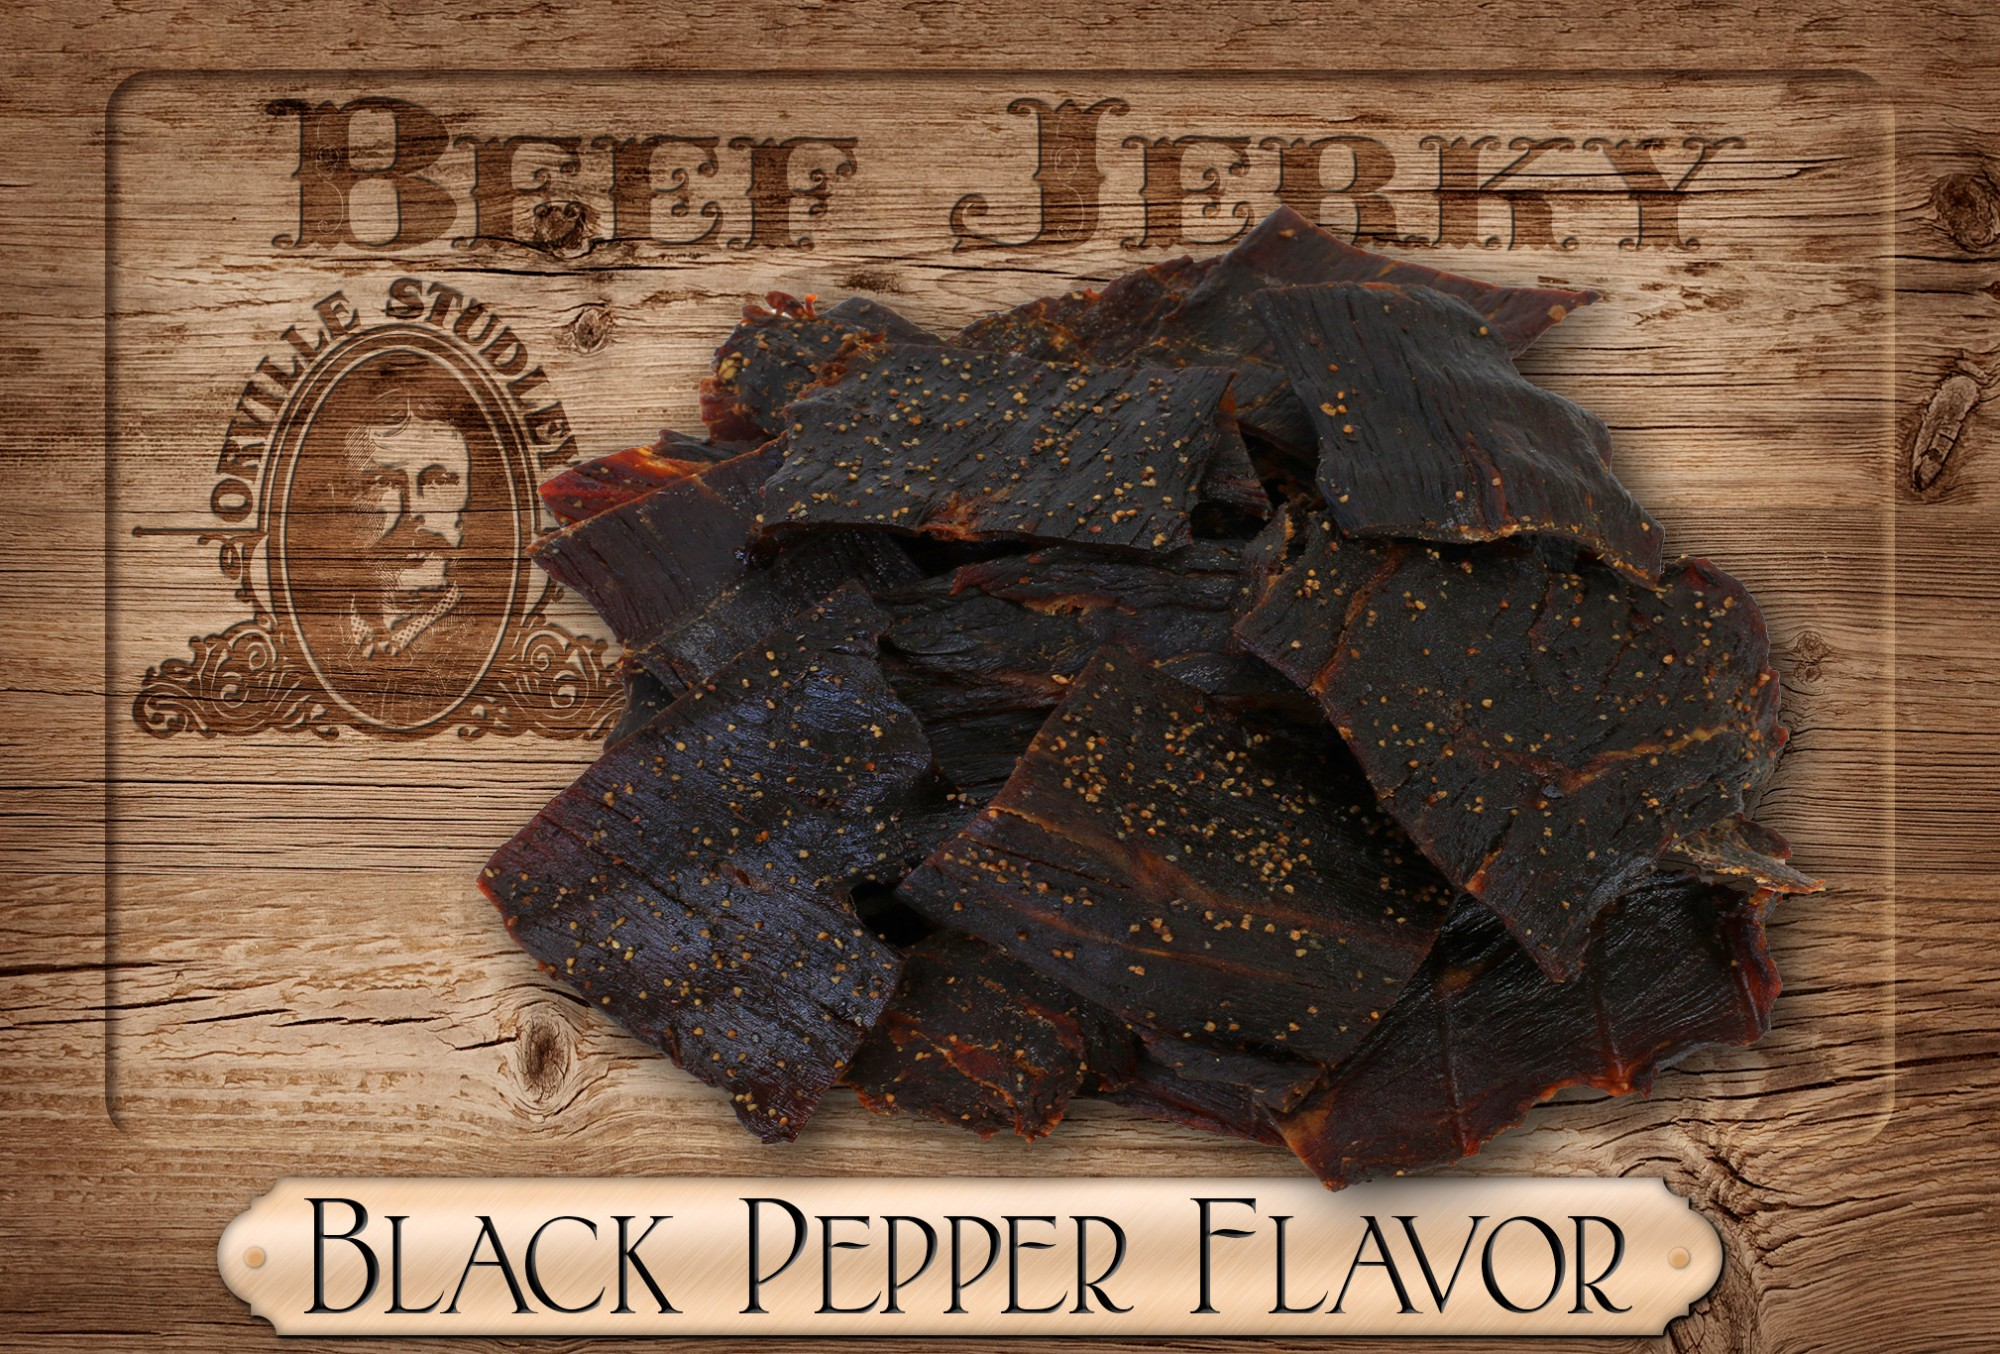 Best Black Pepper Beef Jerky by Orville Studley